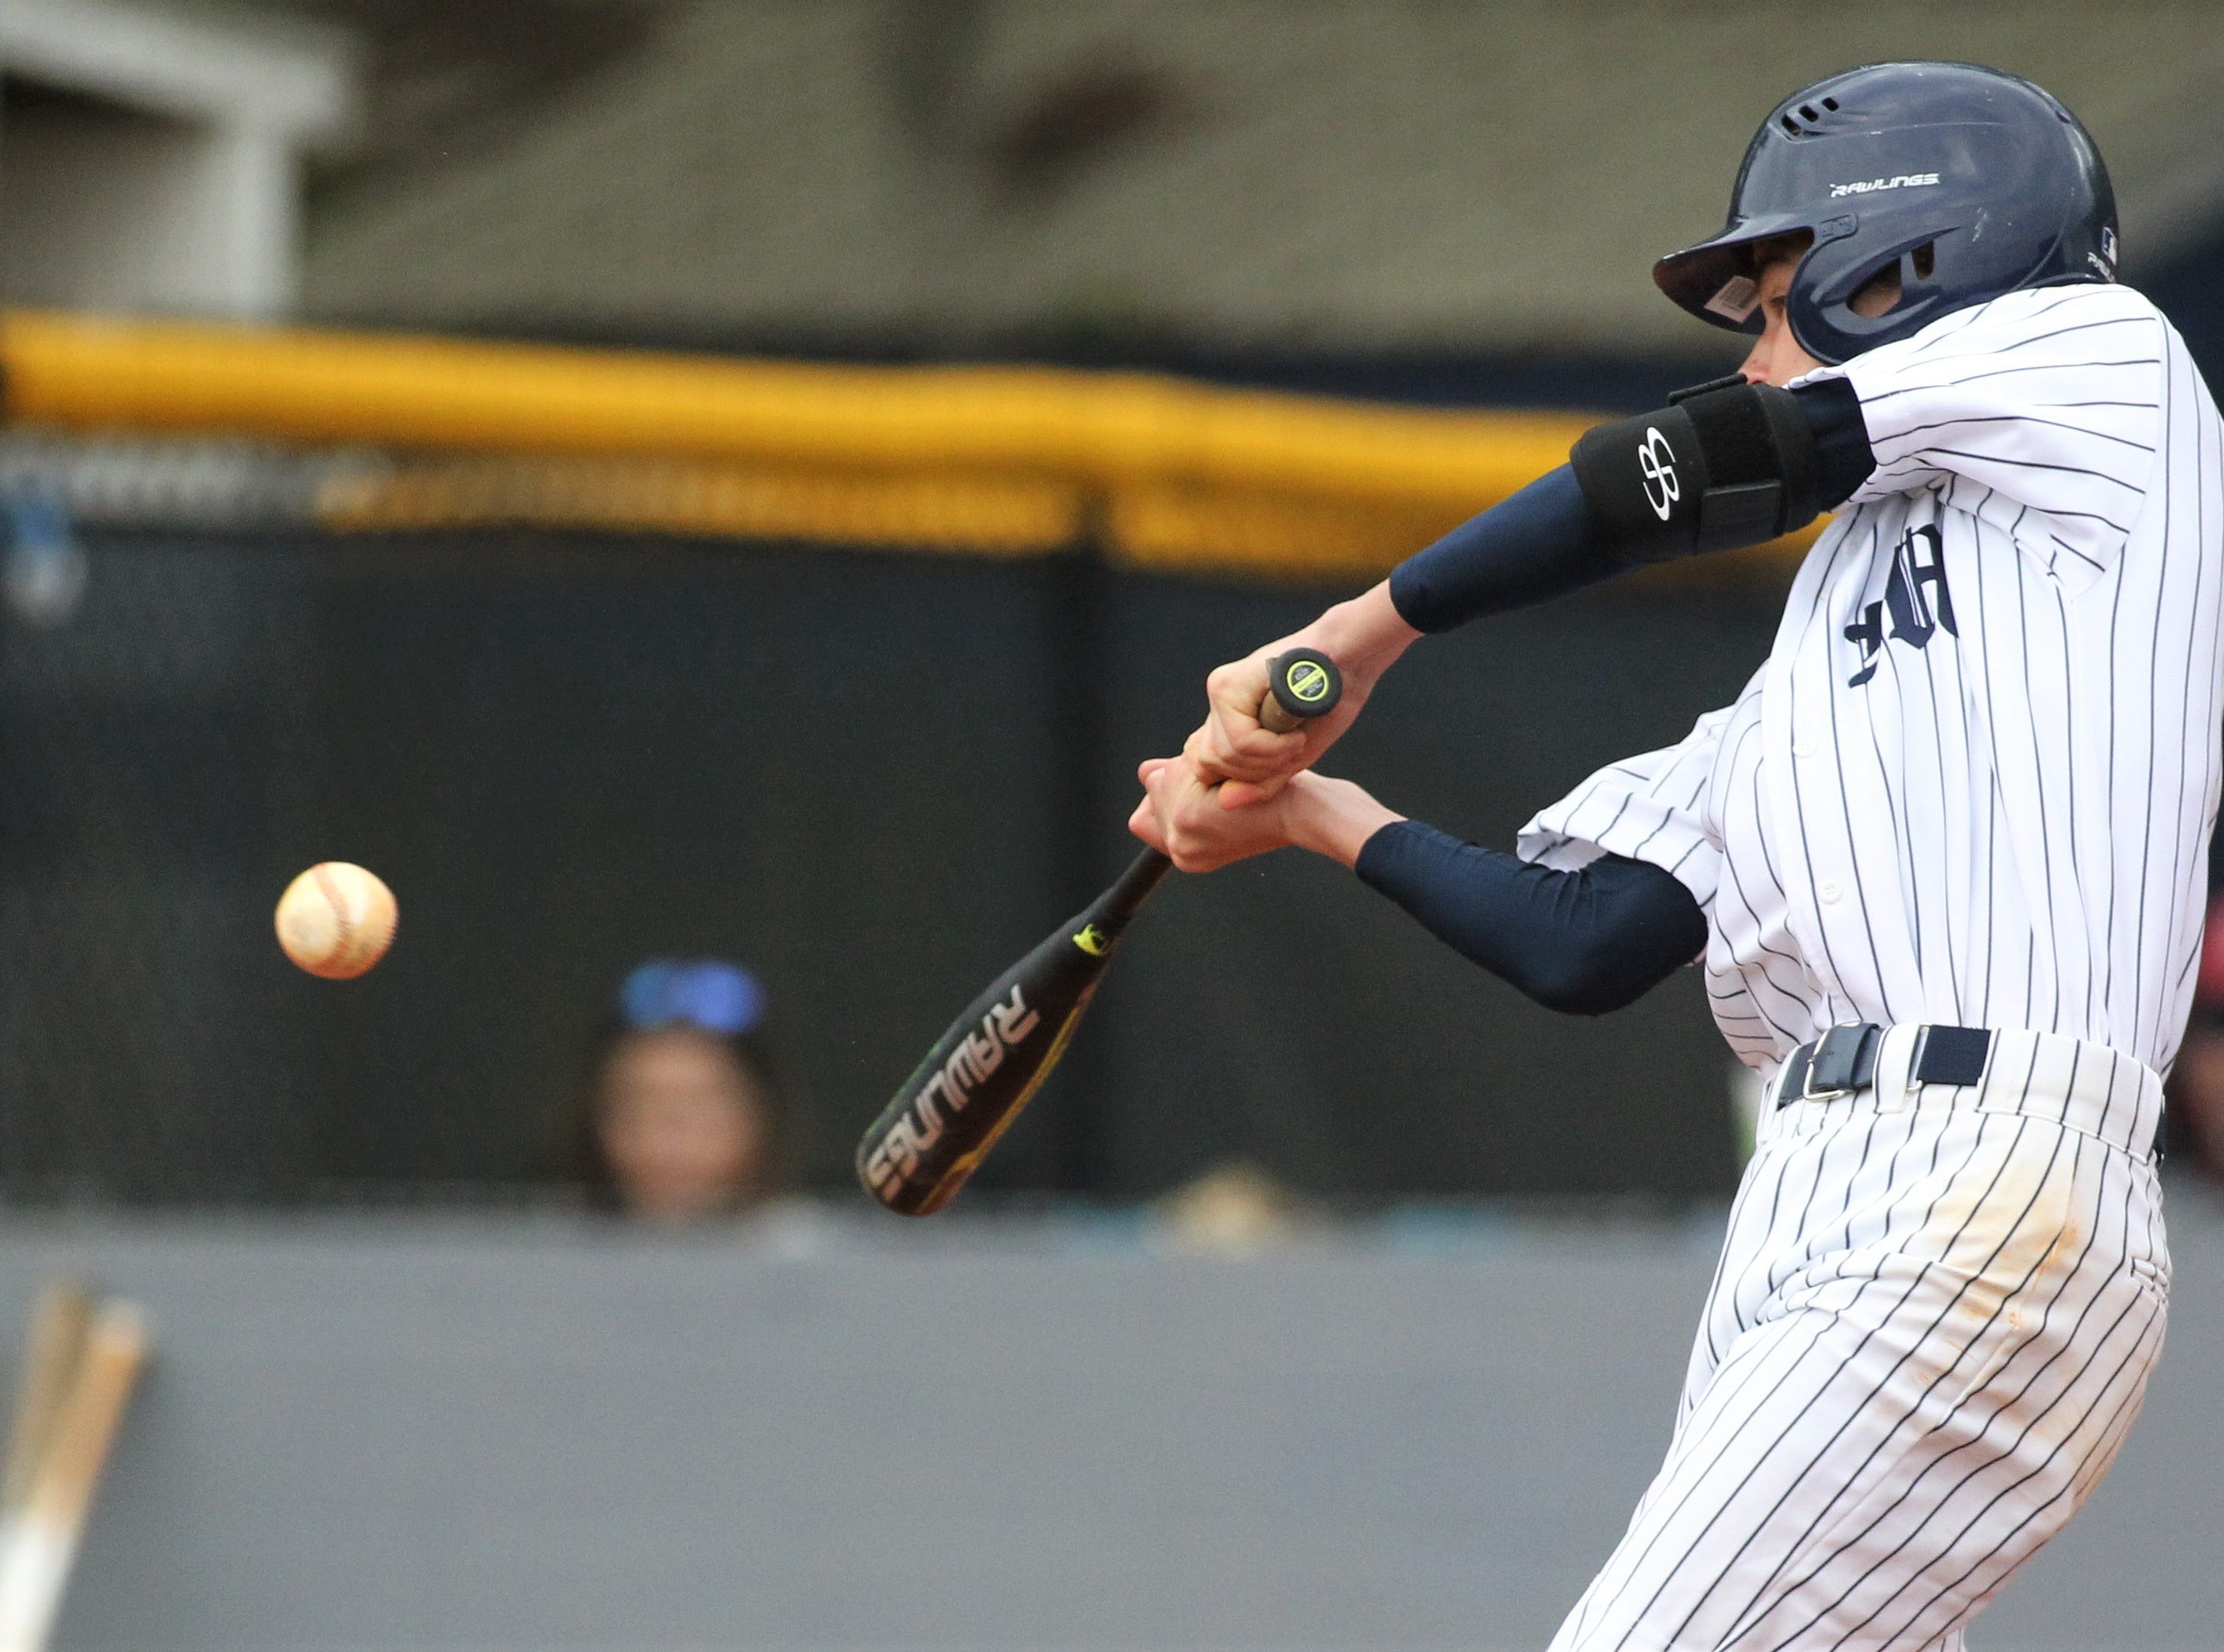 Maclay's Davidson Oberste bats as Liberty County's baseball team went on the road to beat Maclay 8-2 on Saturday, March 16, 2019. The Bulldogs played their first game following their head coach Corey Crum's tragic death six days ago.